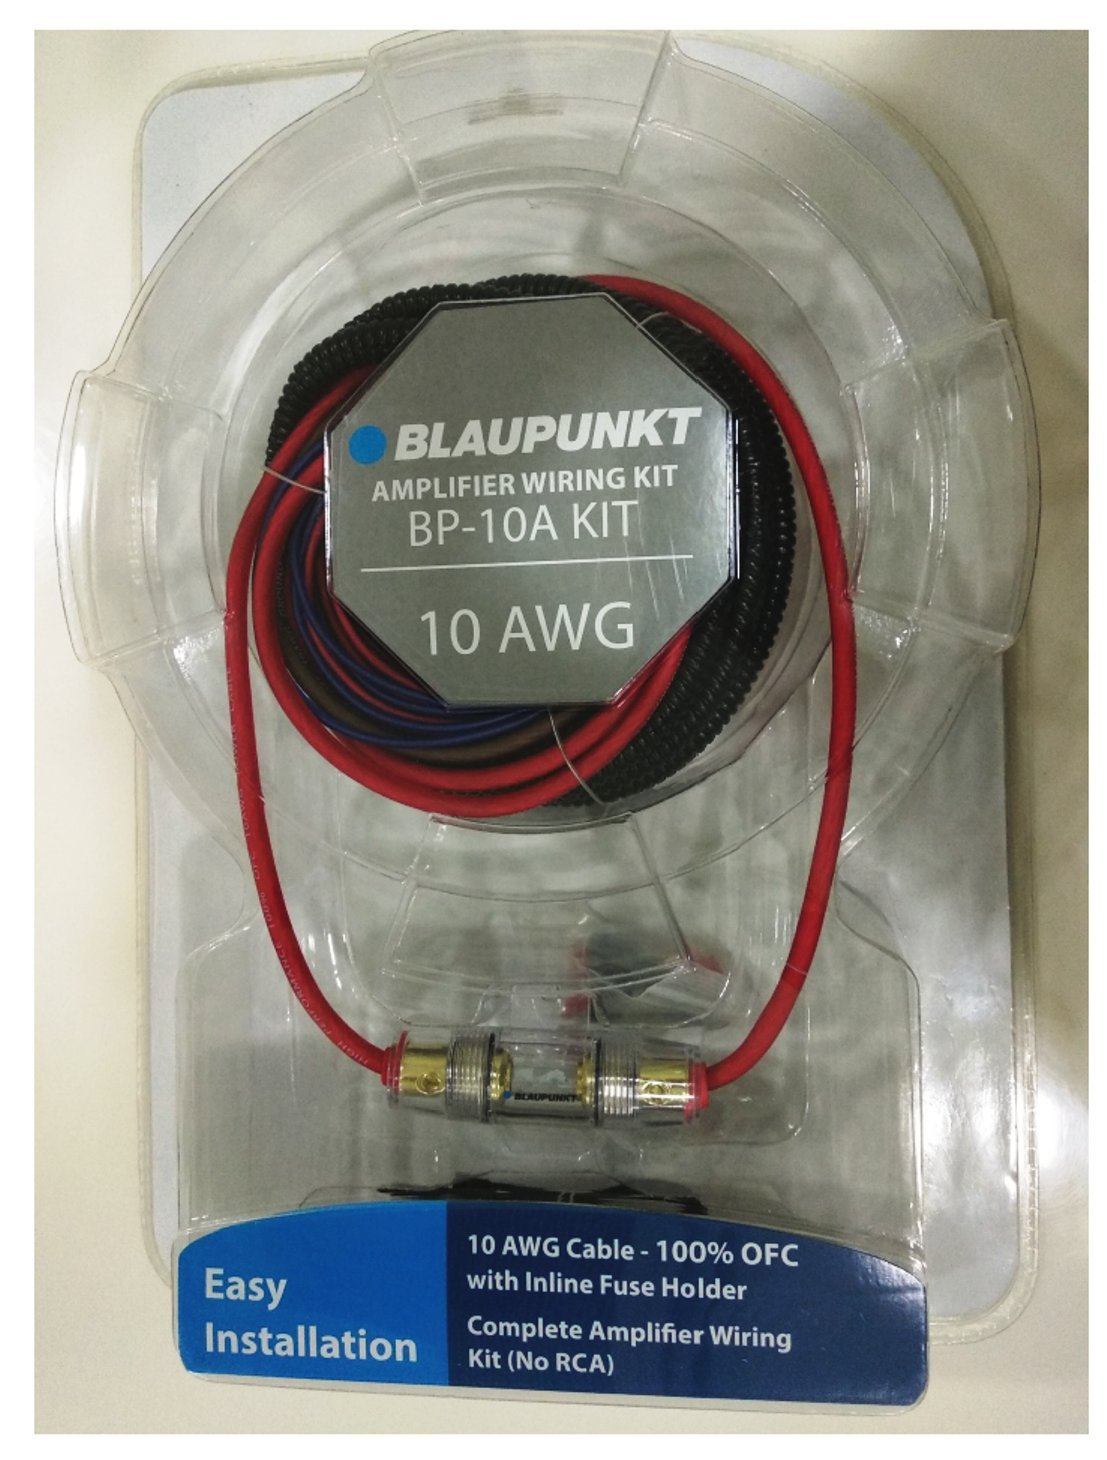 Blaupunkt BP-10A 10 Gauge Amplifier Wiring Kit (100% OFC)